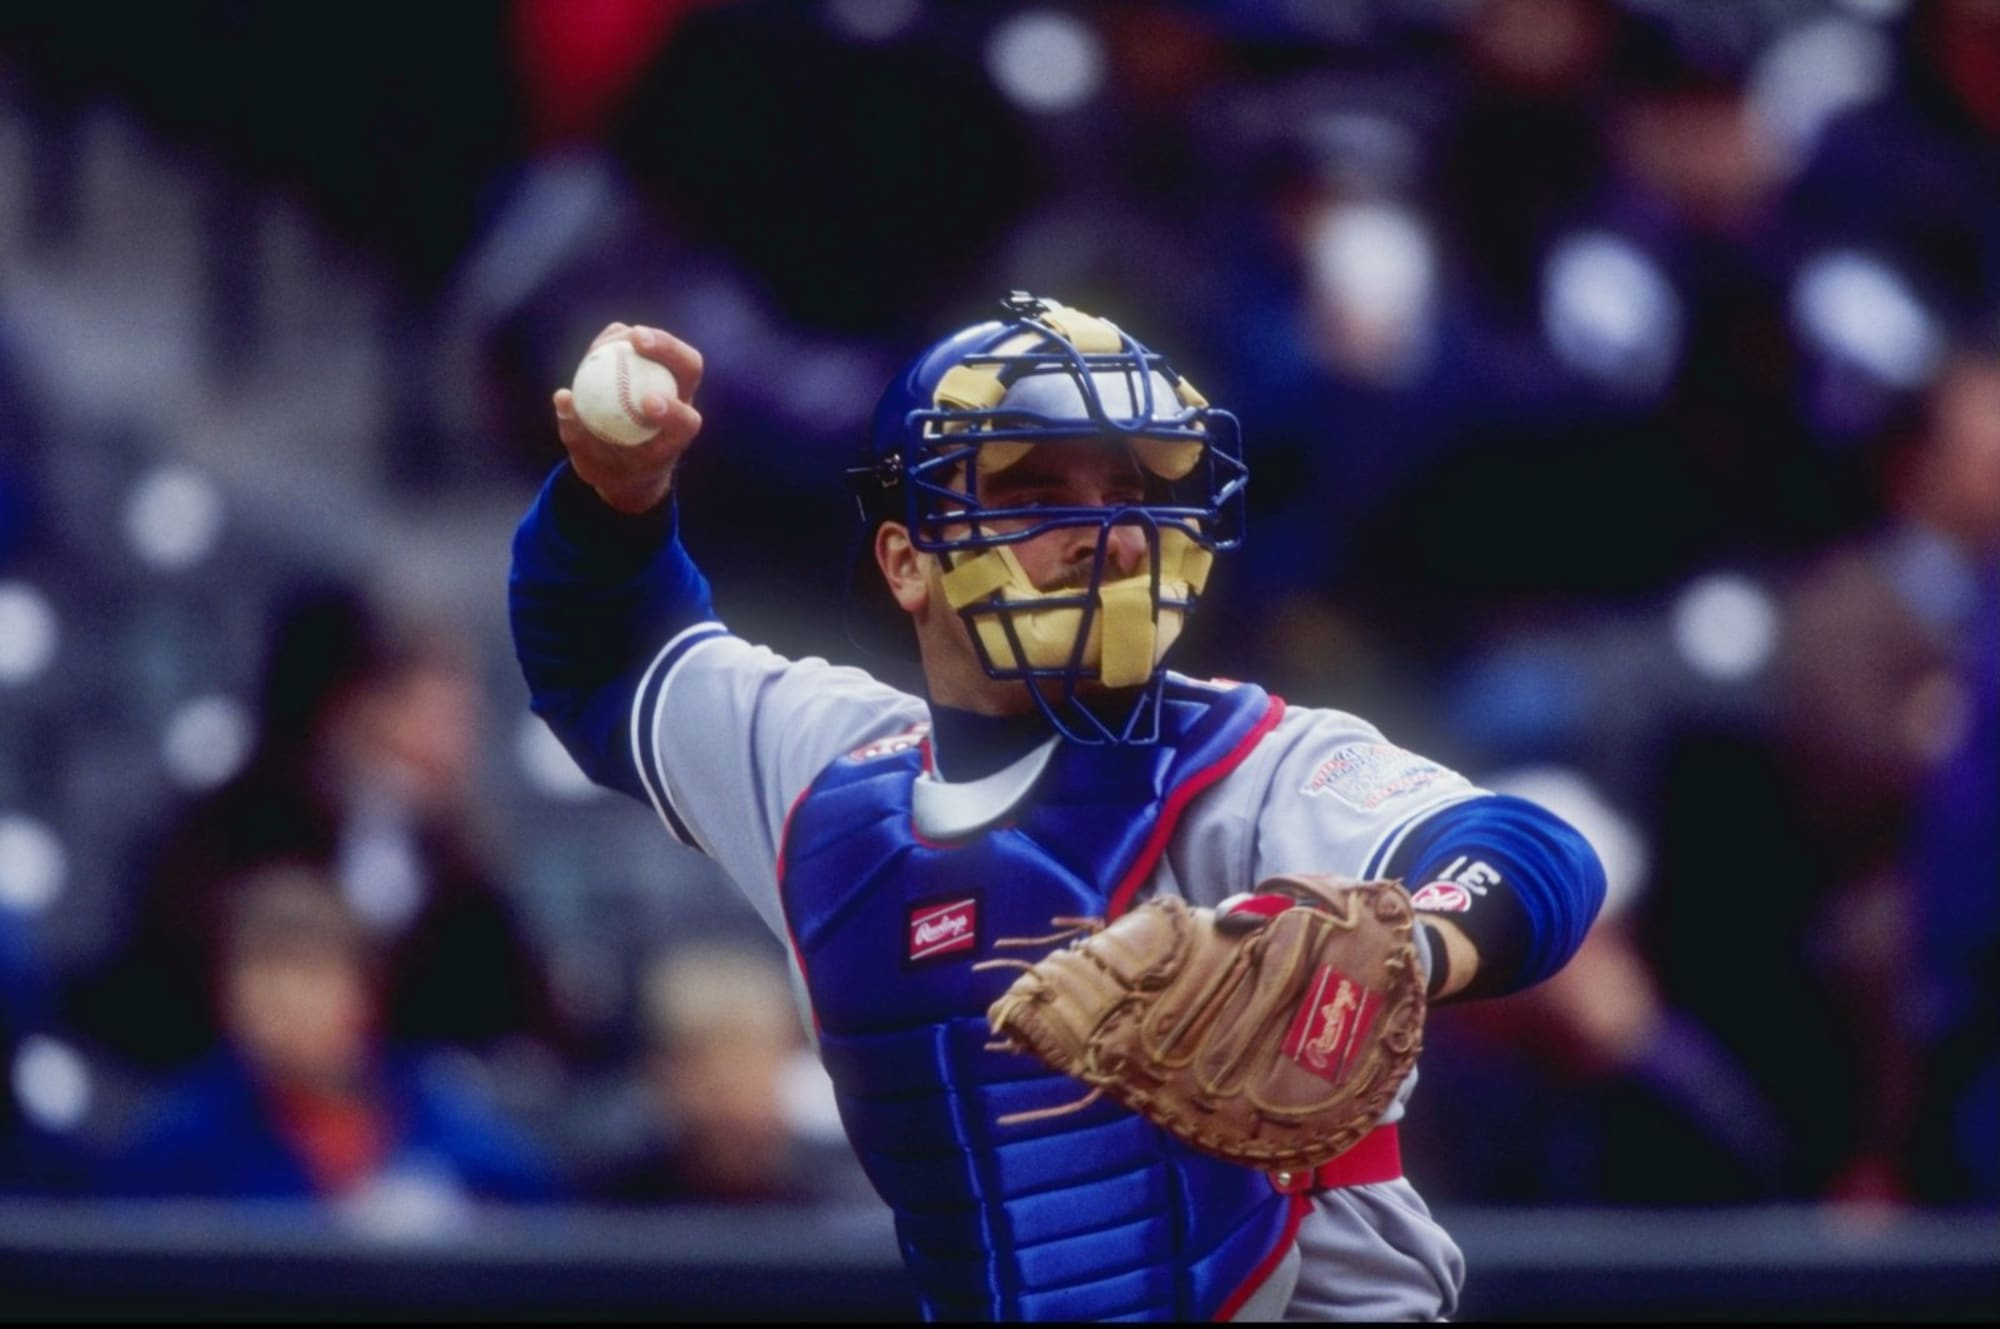 Dodgers: 5 greatest seasons by a catcher